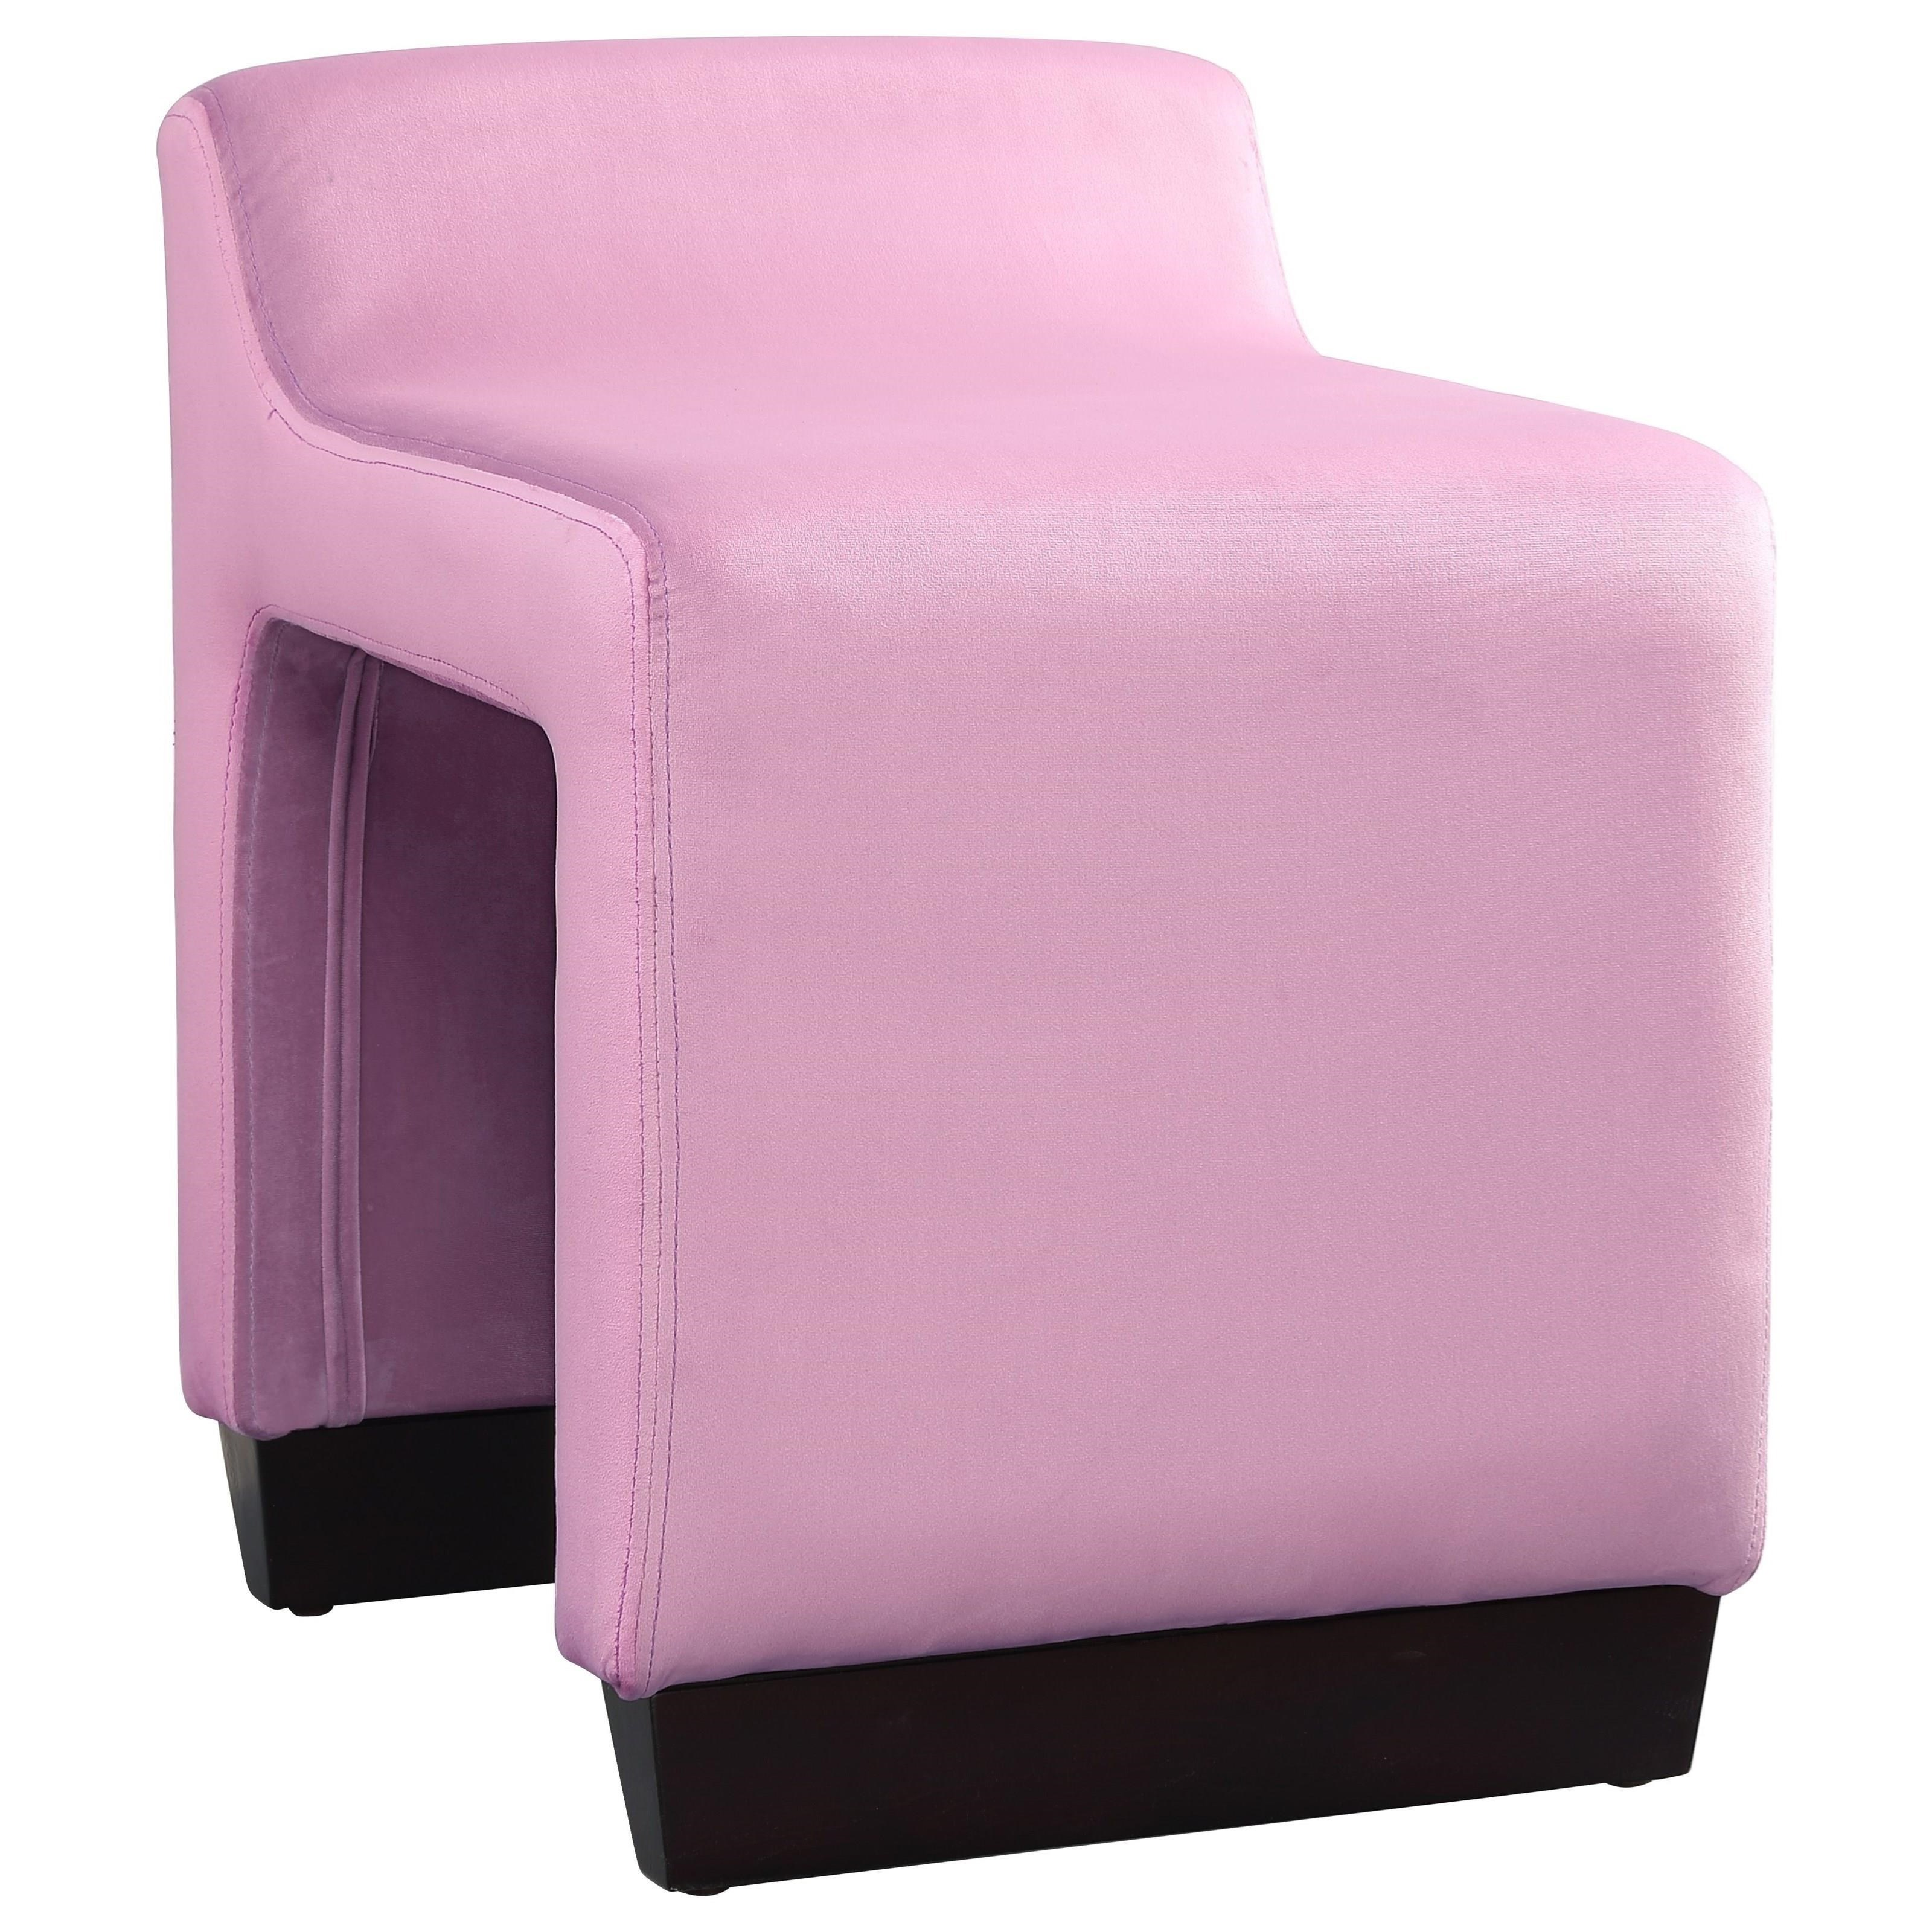 Alford Ottoman by Acme Furniture at Carolina Direct